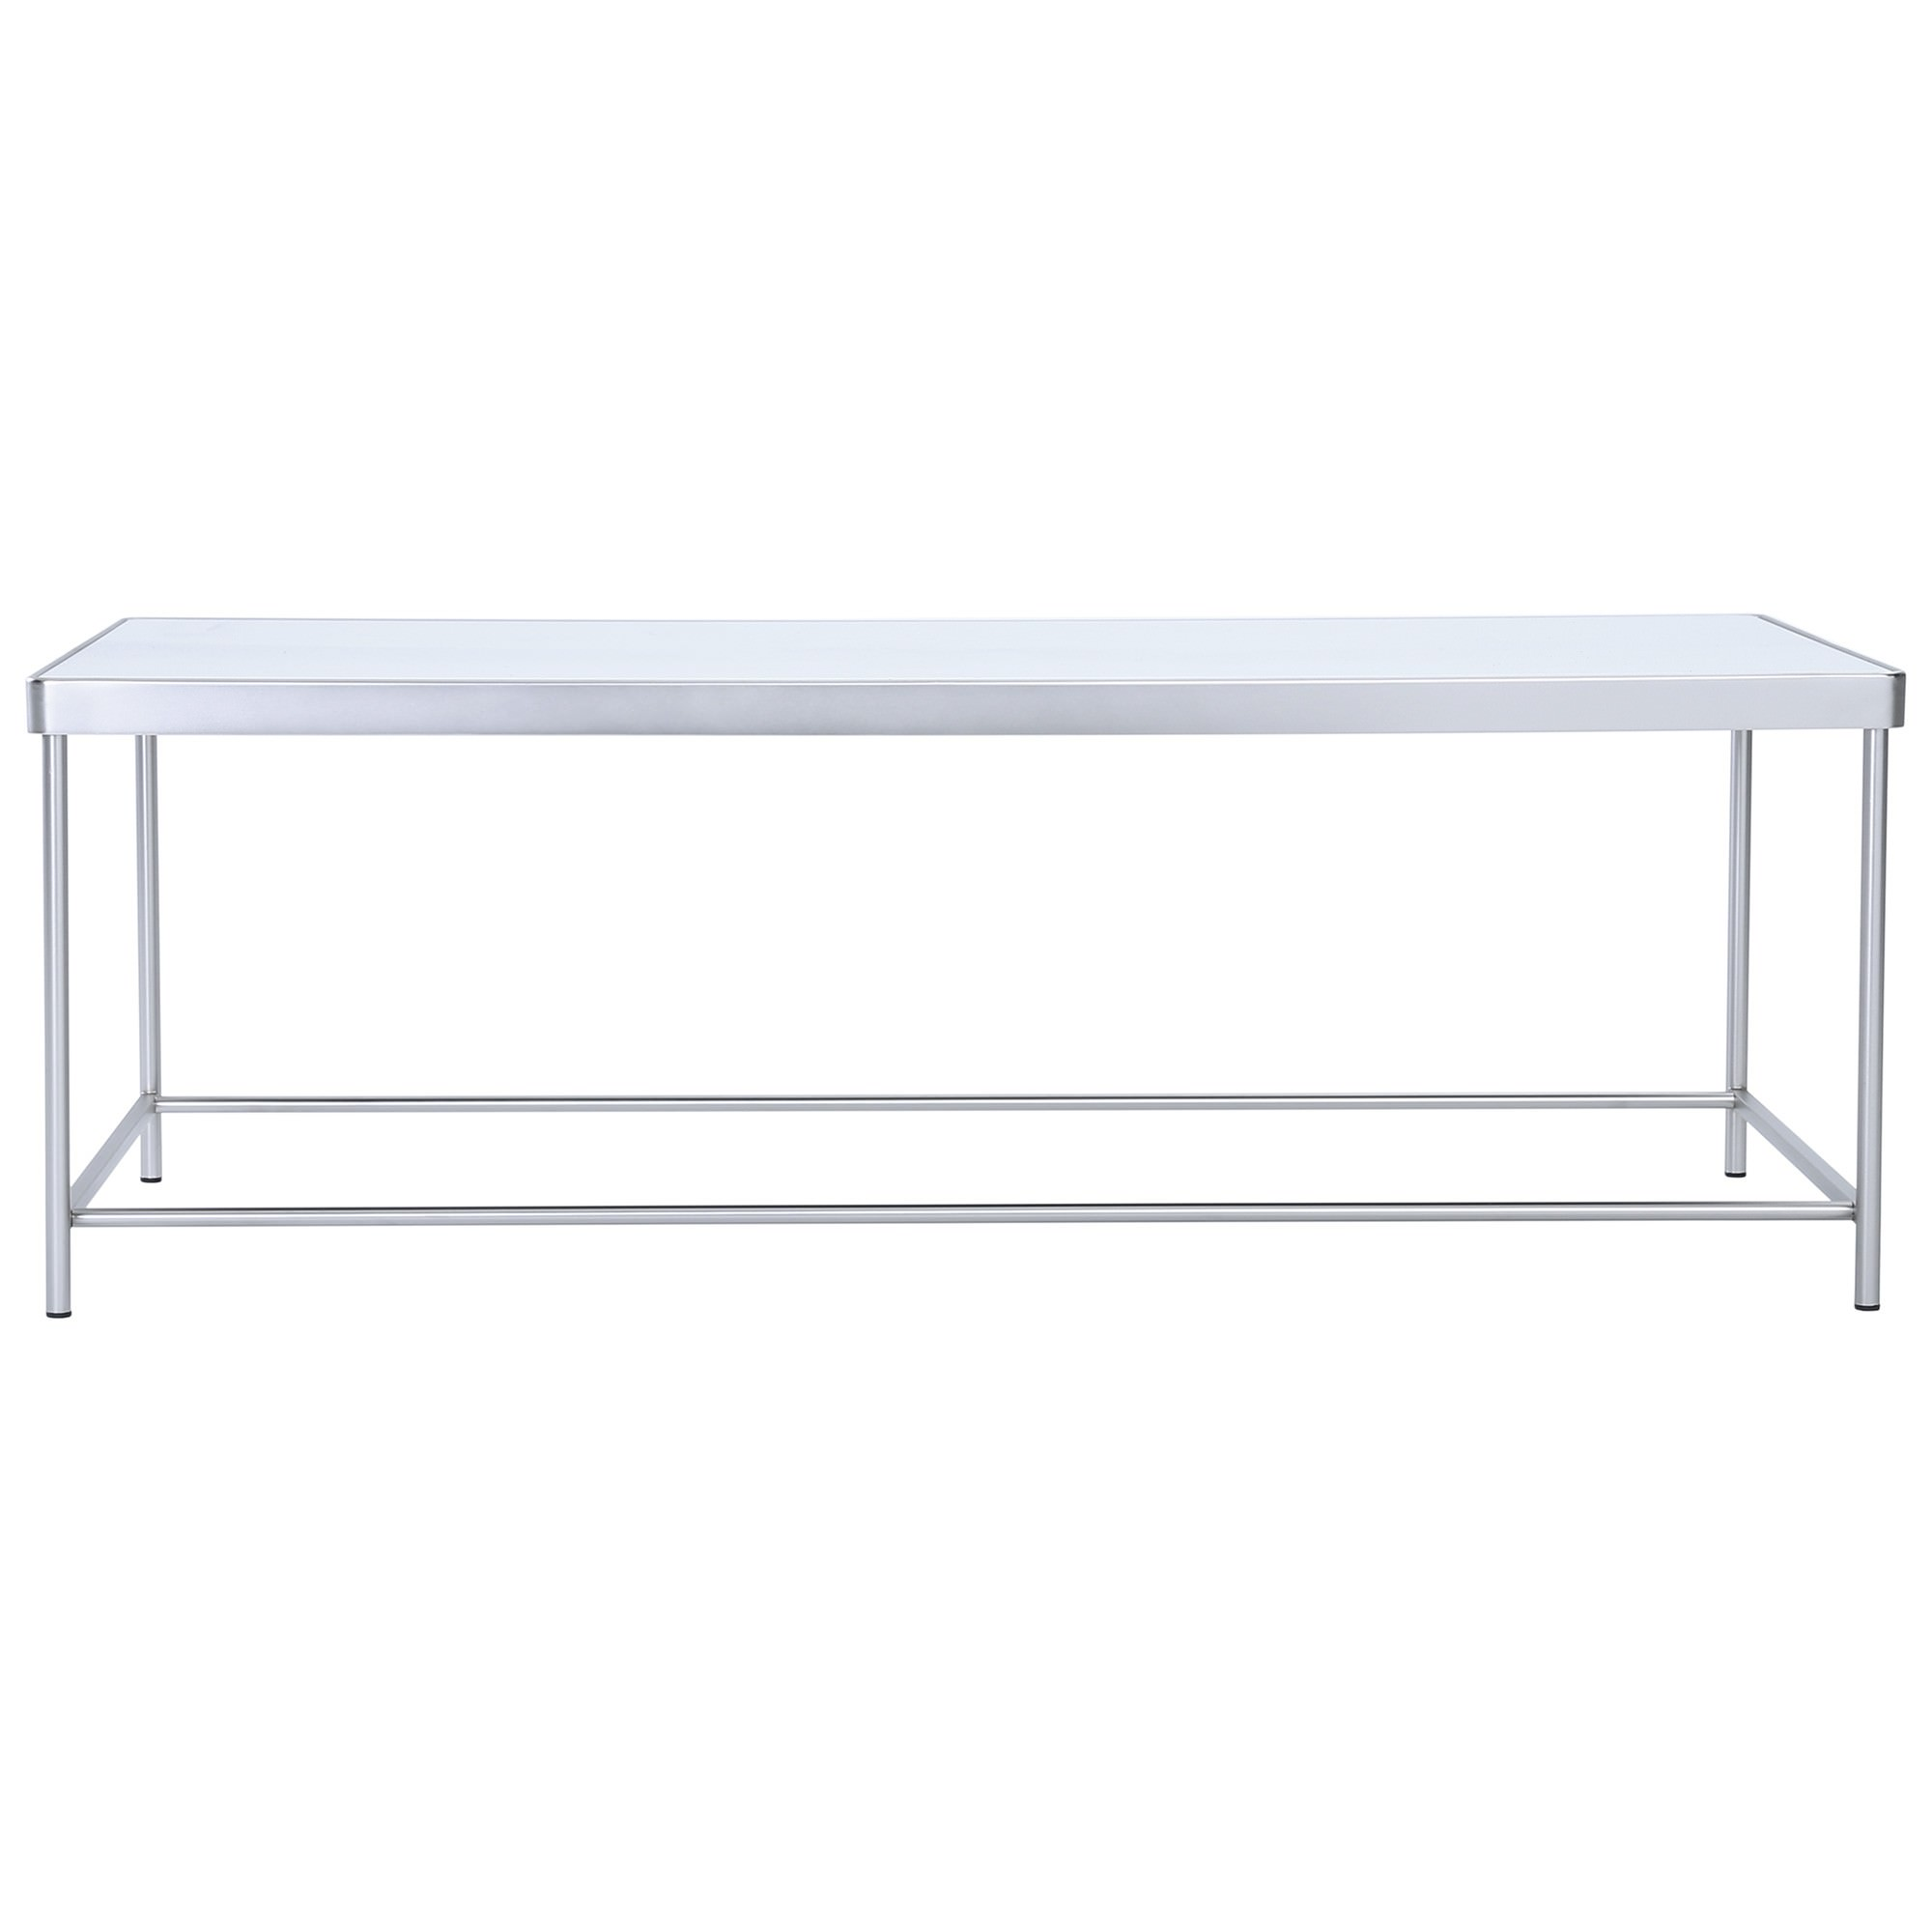 Cameo Mirror Topped Metal Coffee Table, 120cm